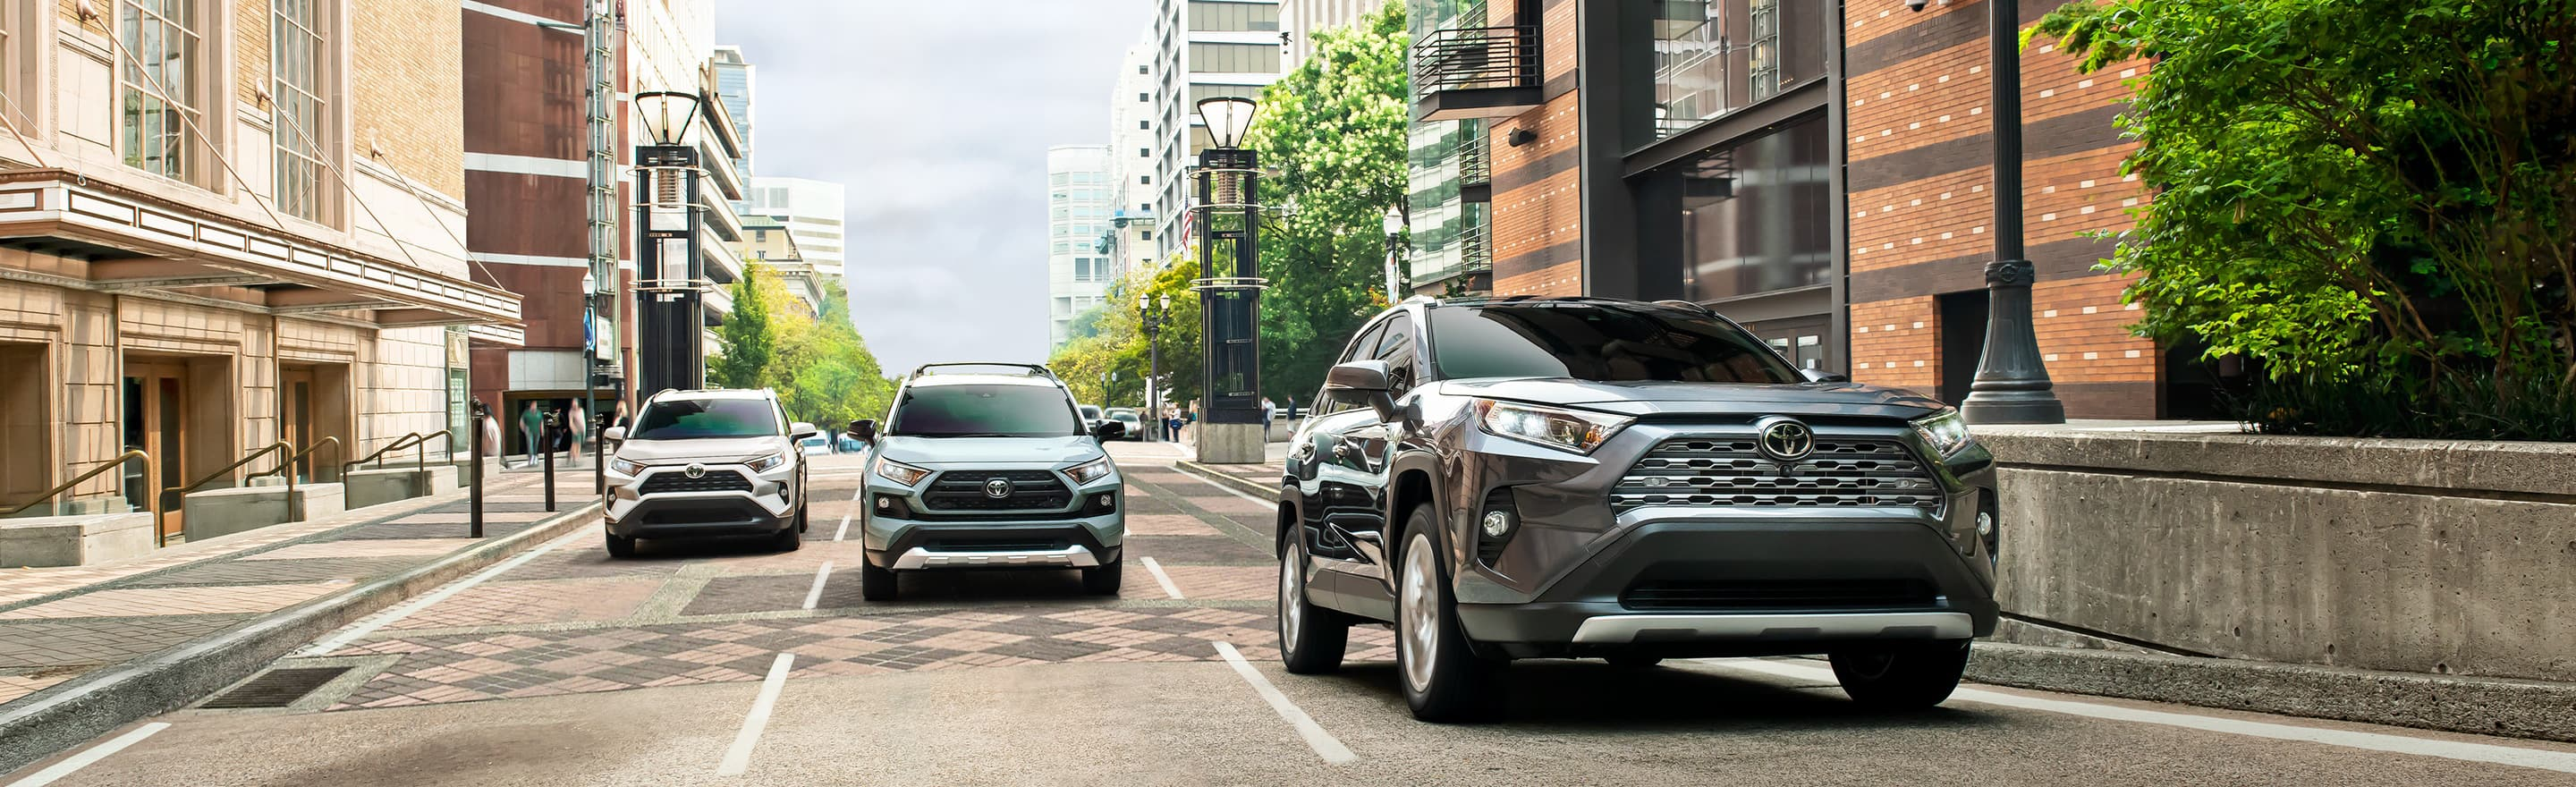 Unearth The New 2019 Toyota RAV4 Crossover At Ganley Toyota Today